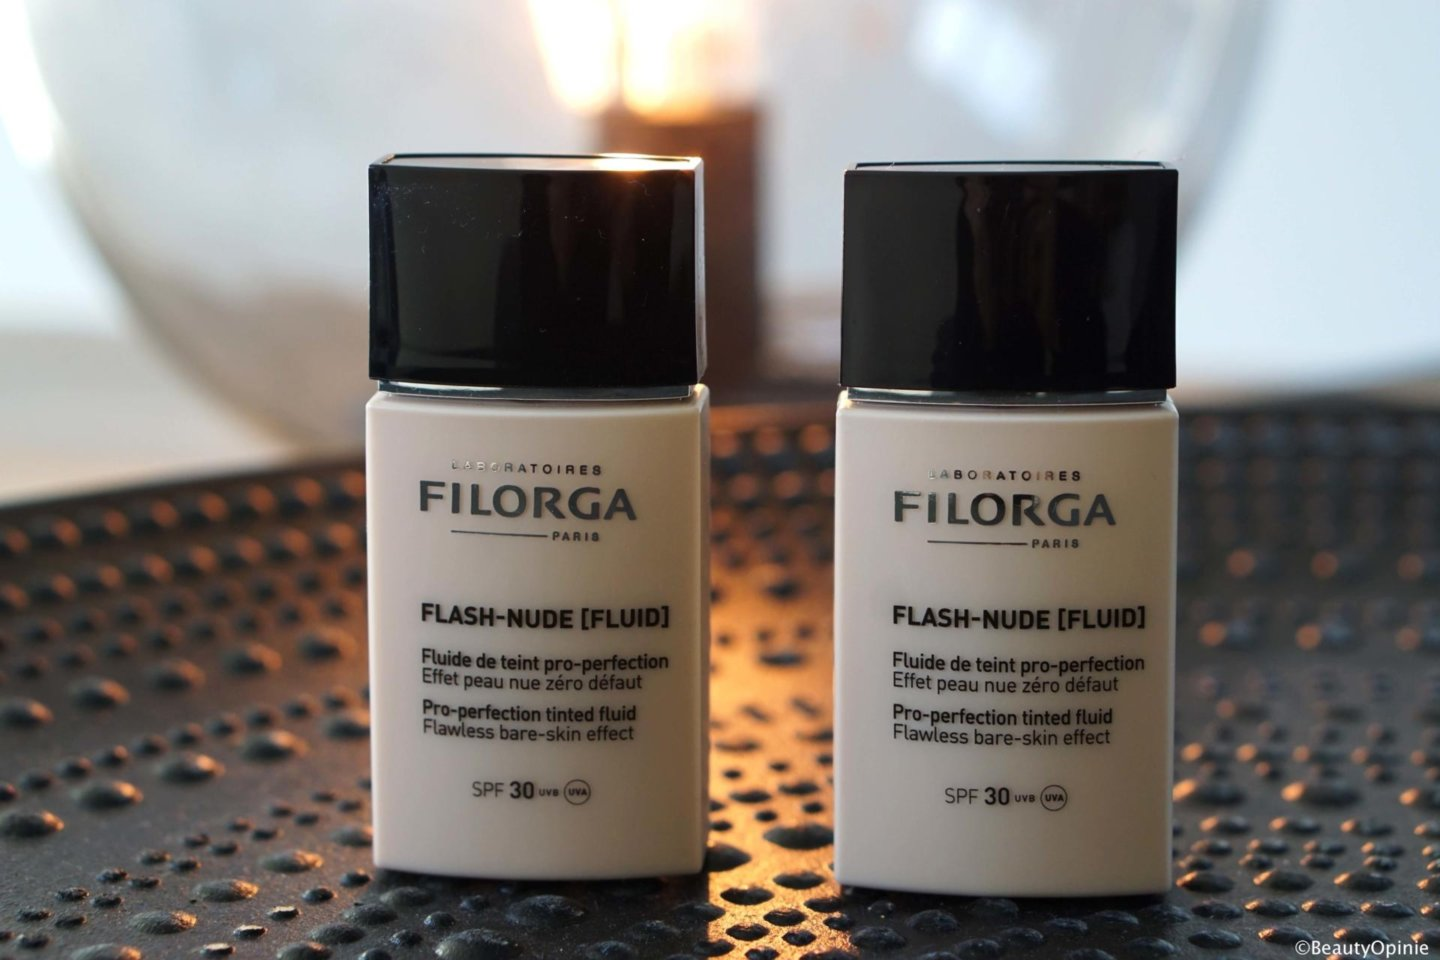 Flash nude fluid | De nieuwste foundation van Filorga